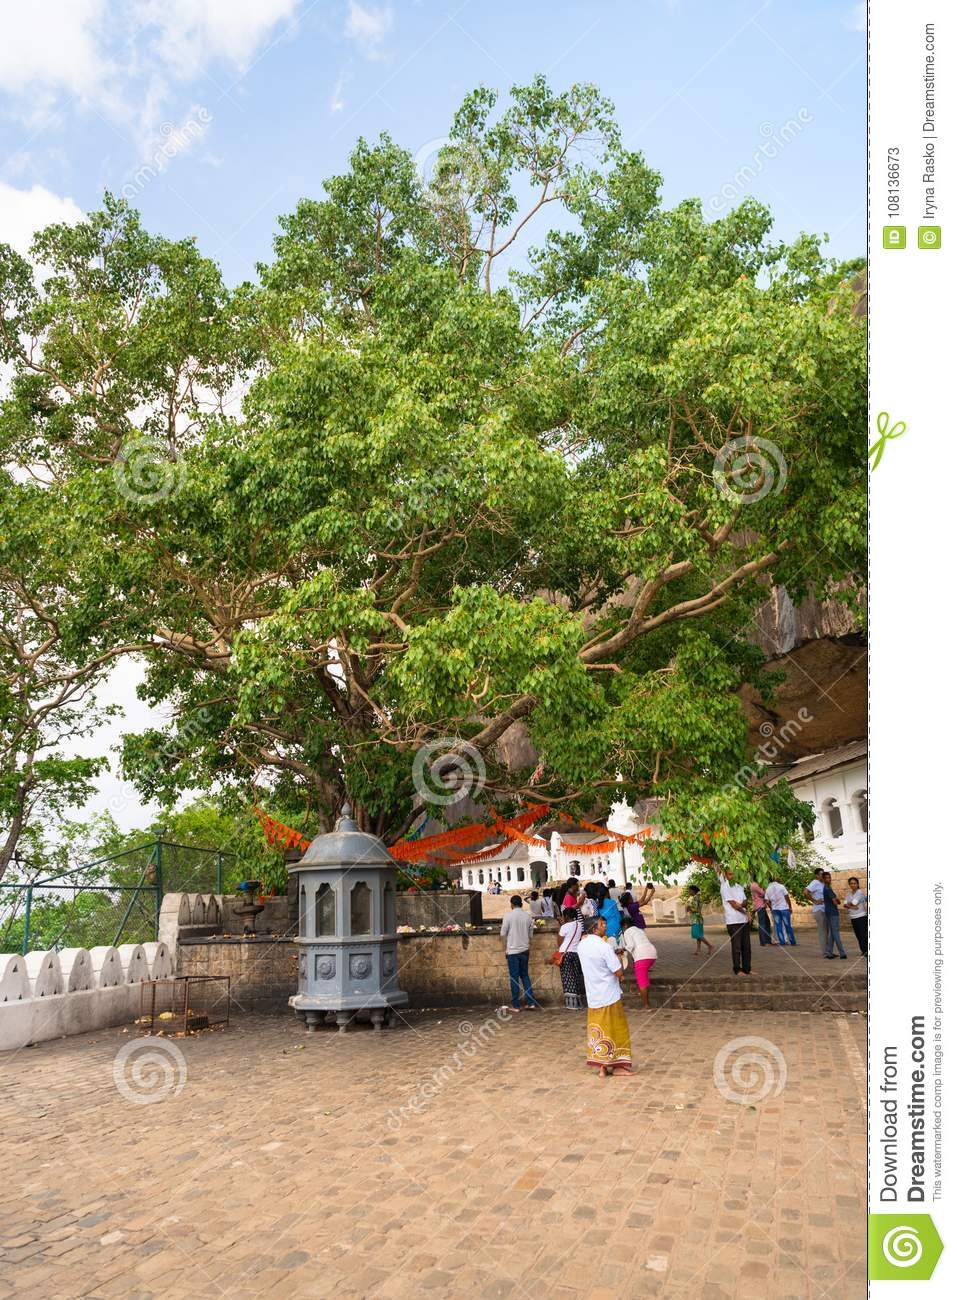 Holy bodhi ficus tree in the Dambulla Golden temple cave complex